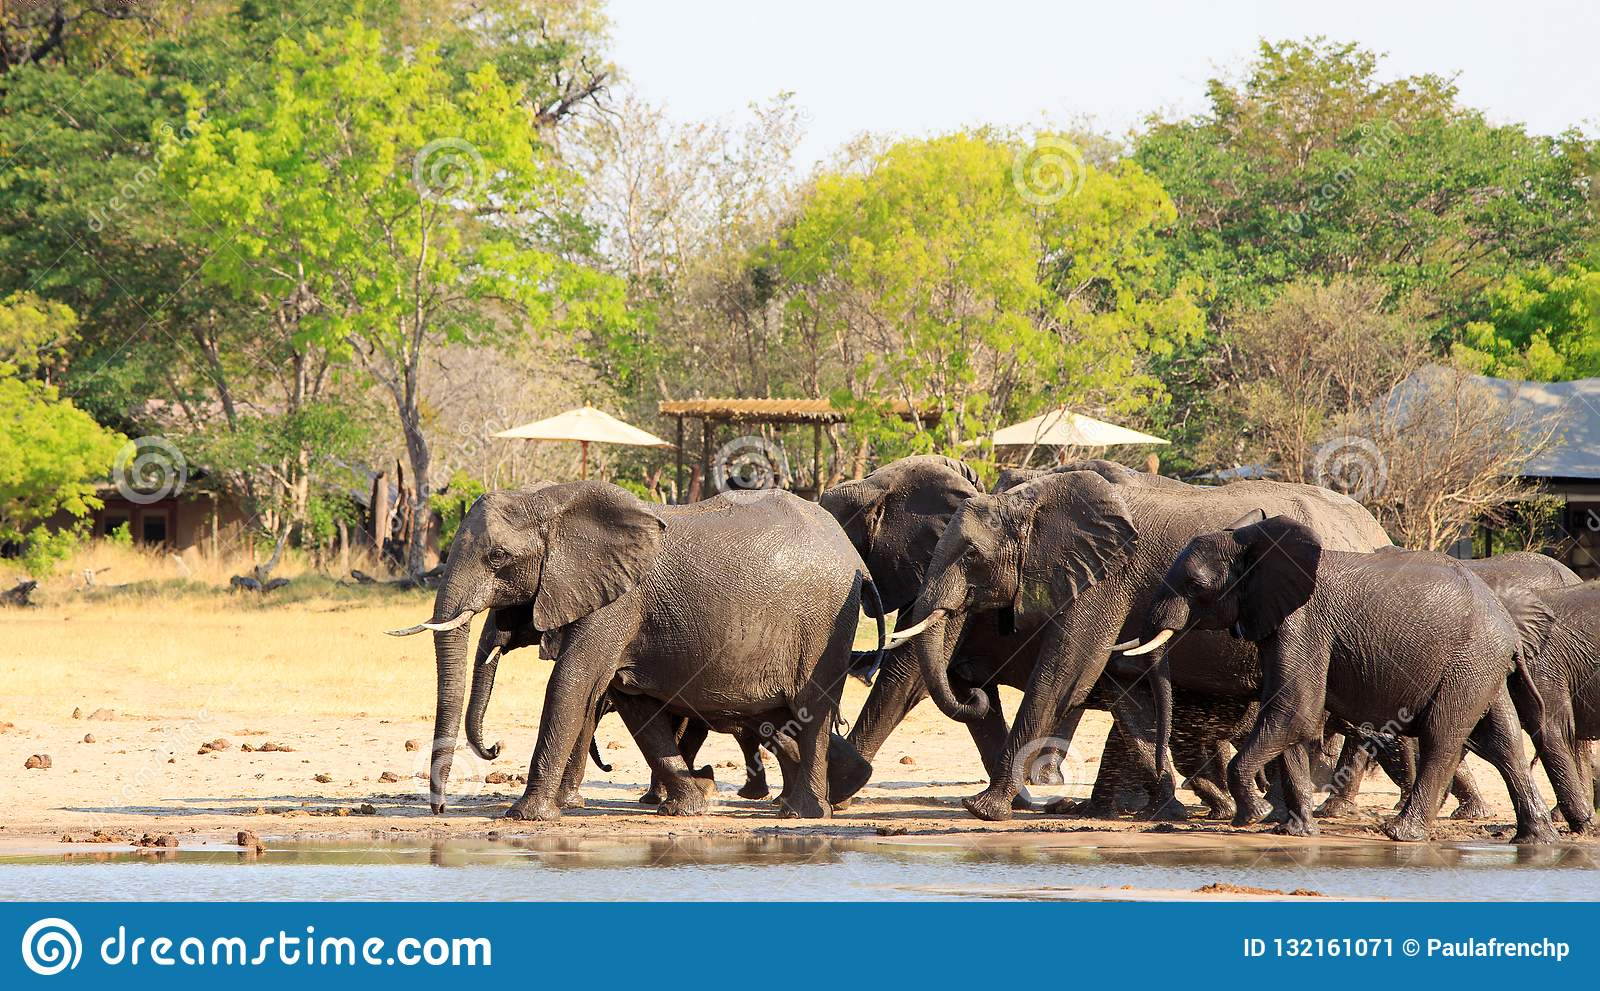 Elephants walking past an african lodge with thatched chalets and parasols in Makololo